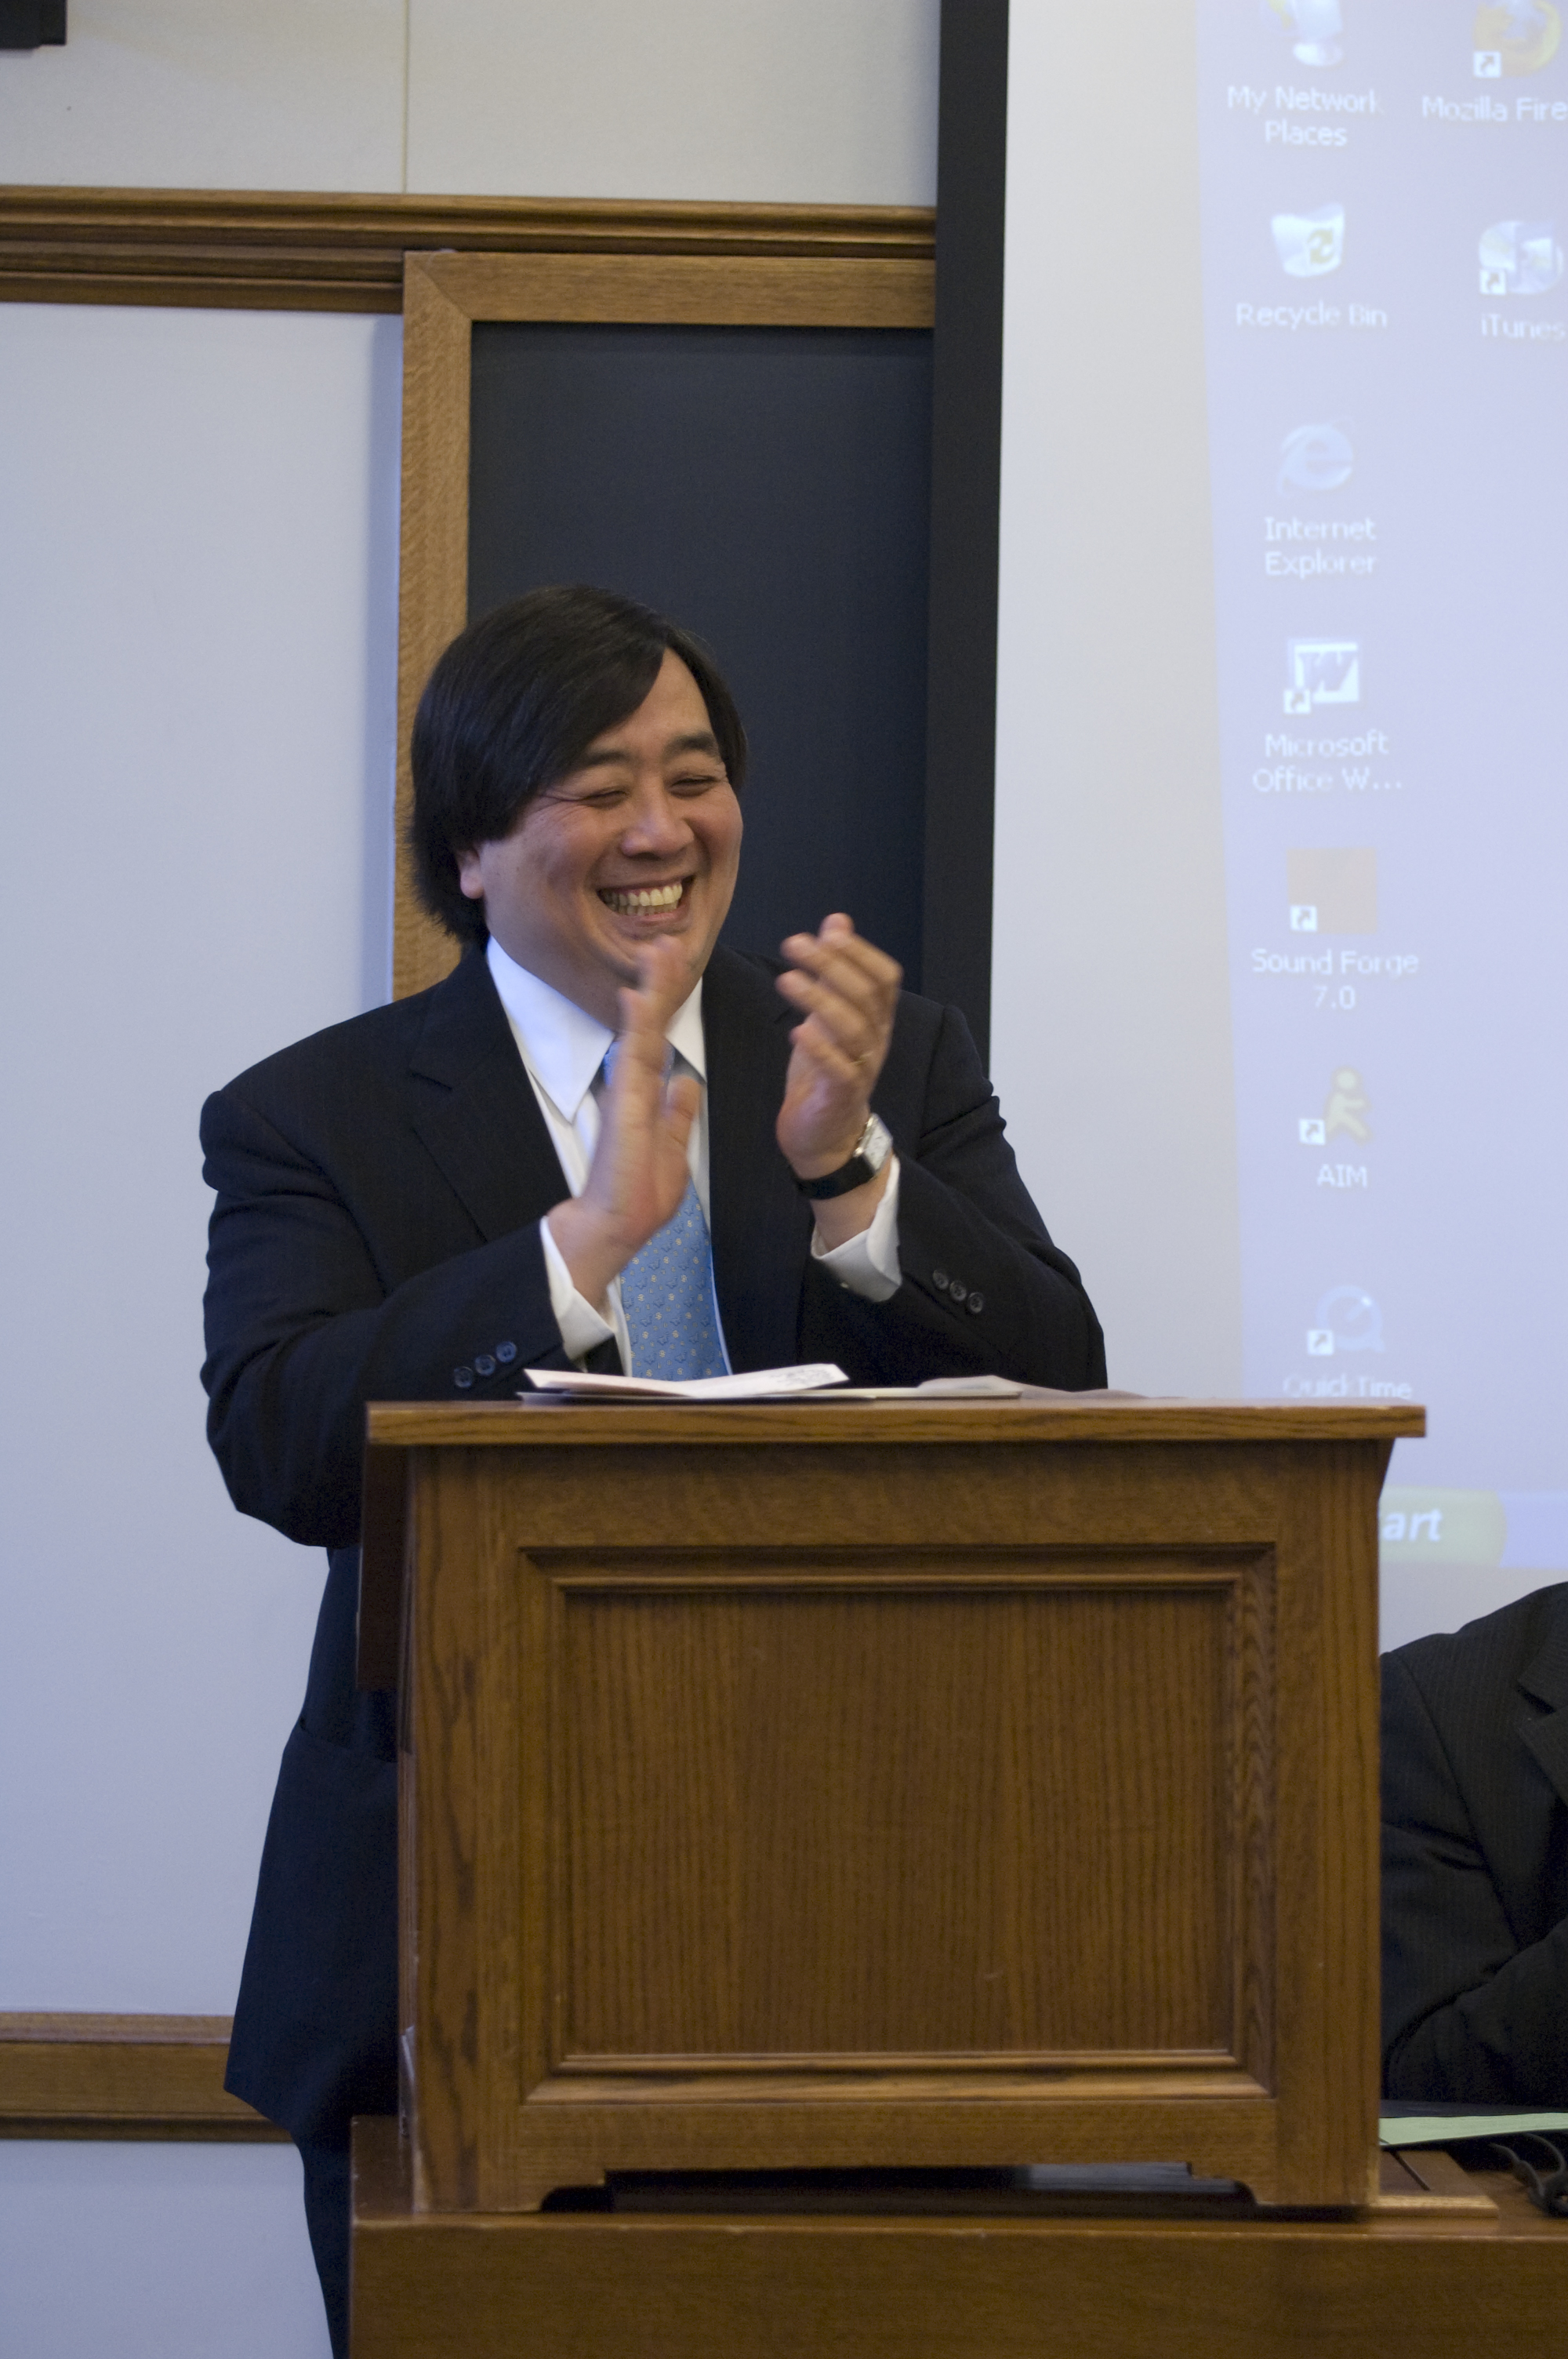 YLS Dean Harold Hongju Koh welcomes audience